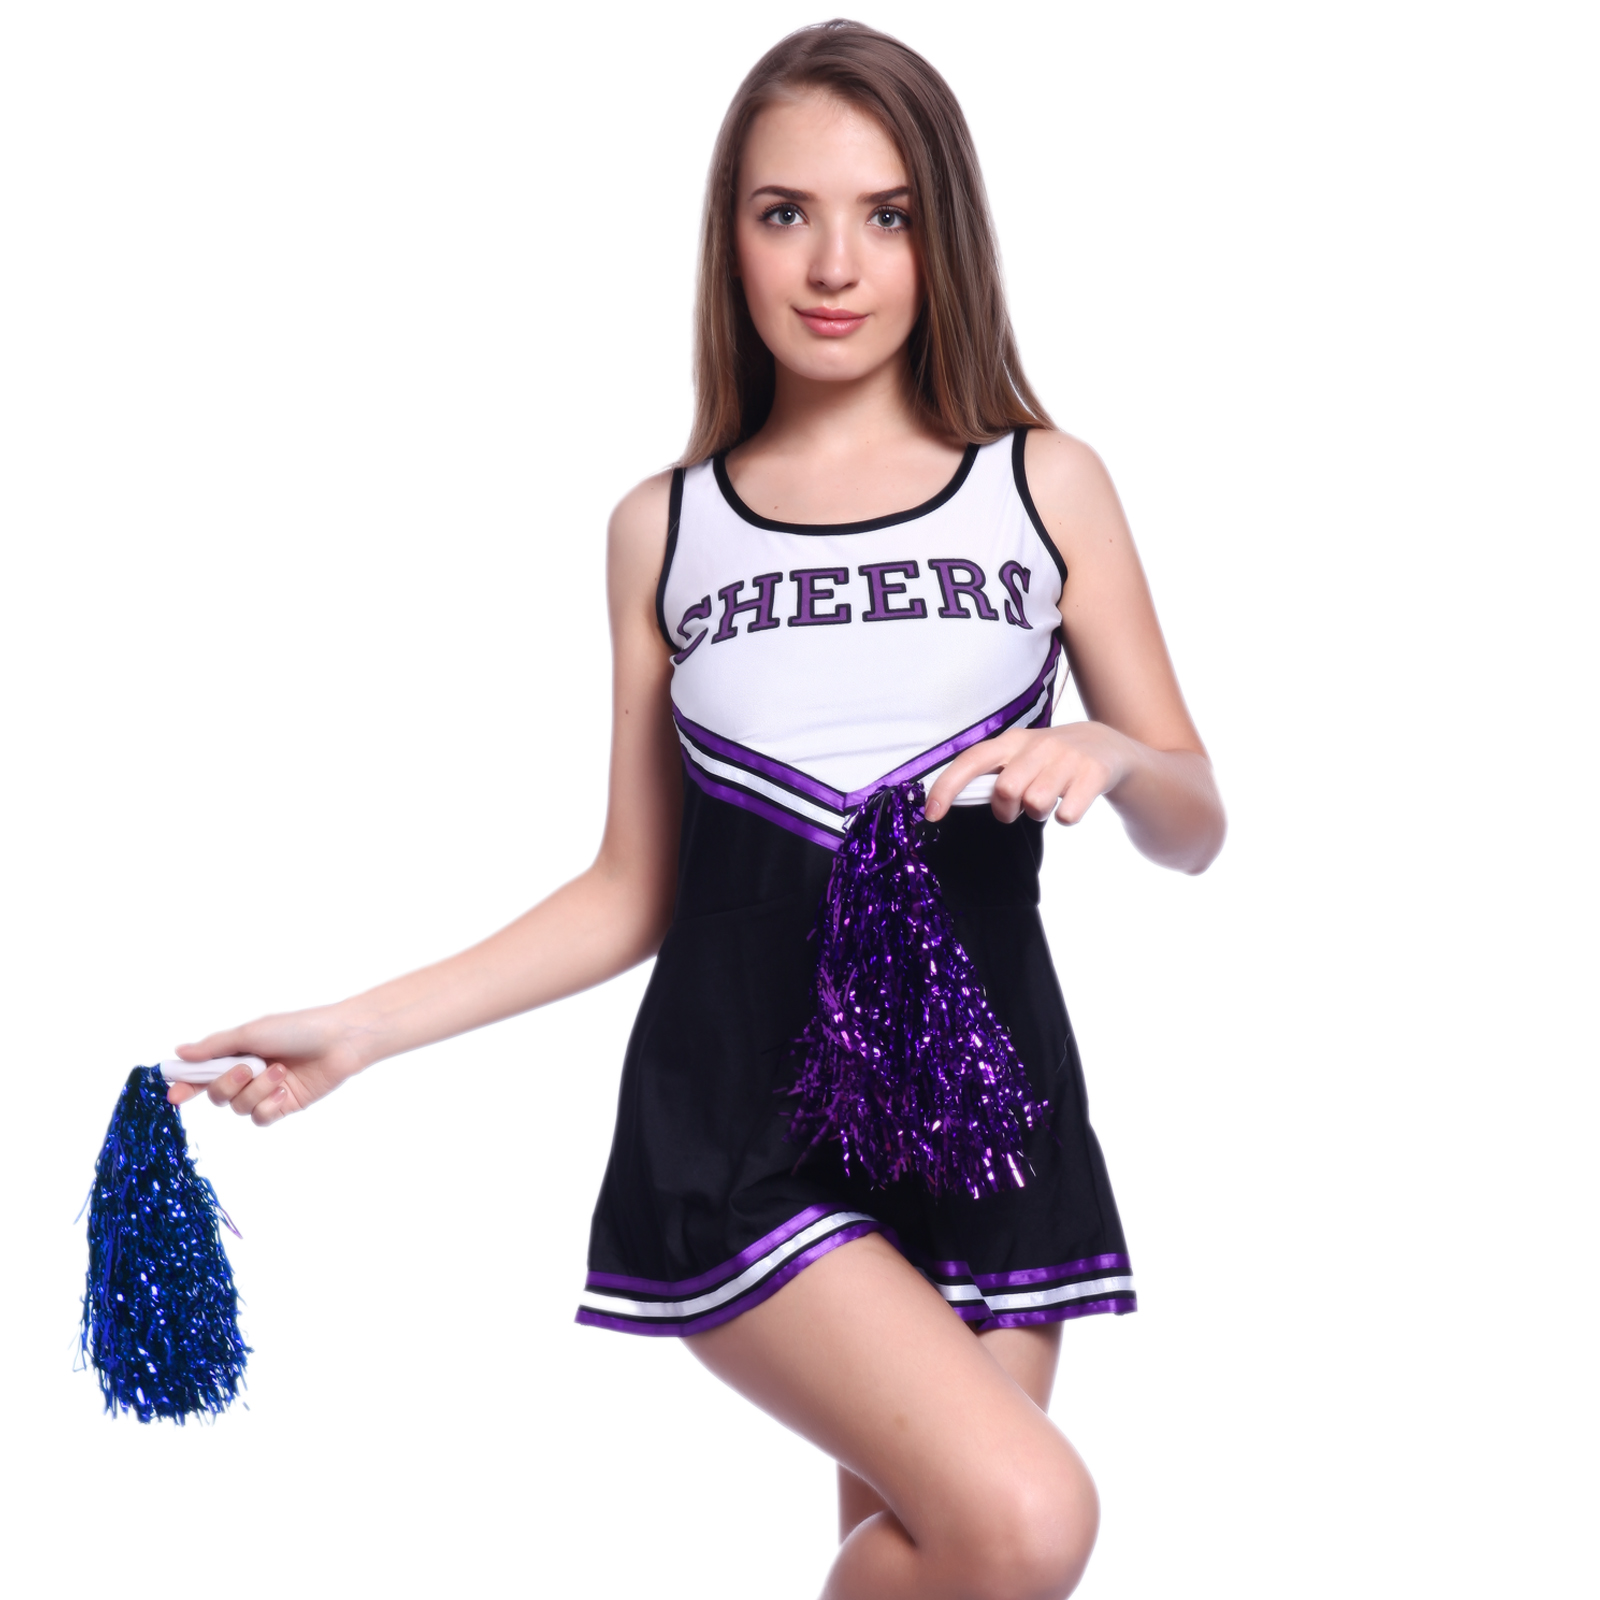 6 Colours Ladies Cheerleader Costume Cheerleading Outfits Girls Clothes Costumes | eBay